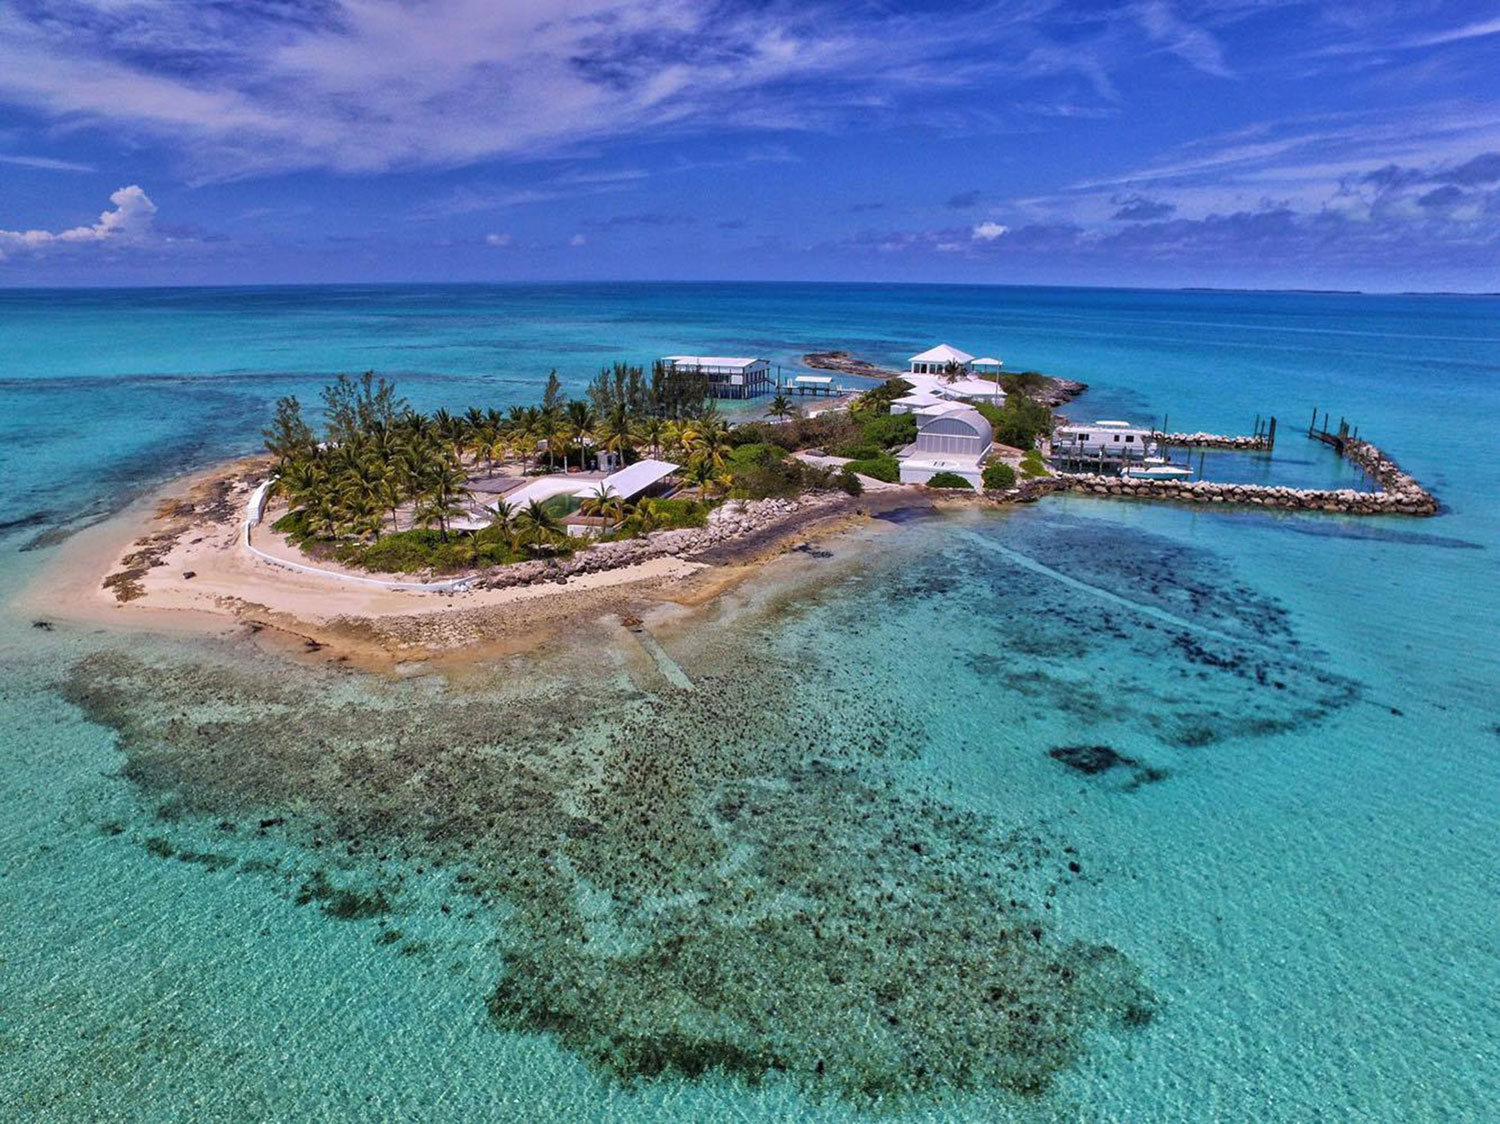 Located just off the coast of Eleuthera in the Bahamas, Lobster Island is a resort-style sanctuary accessible via boat, seaplane, or helicopter.